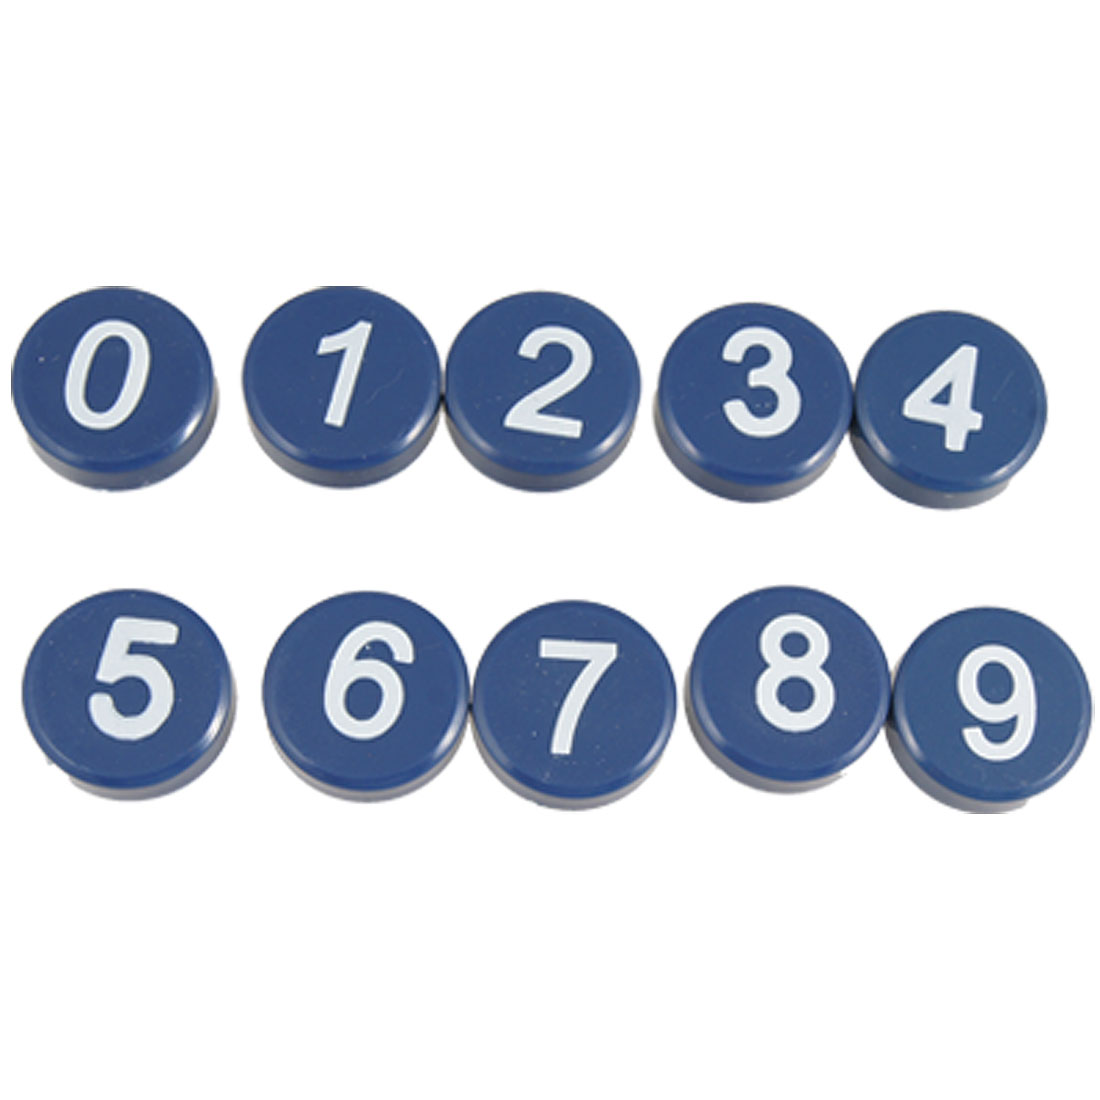 White 0-9 Arabic Number Mark Navy Blue Round Button Magnetic Sticker